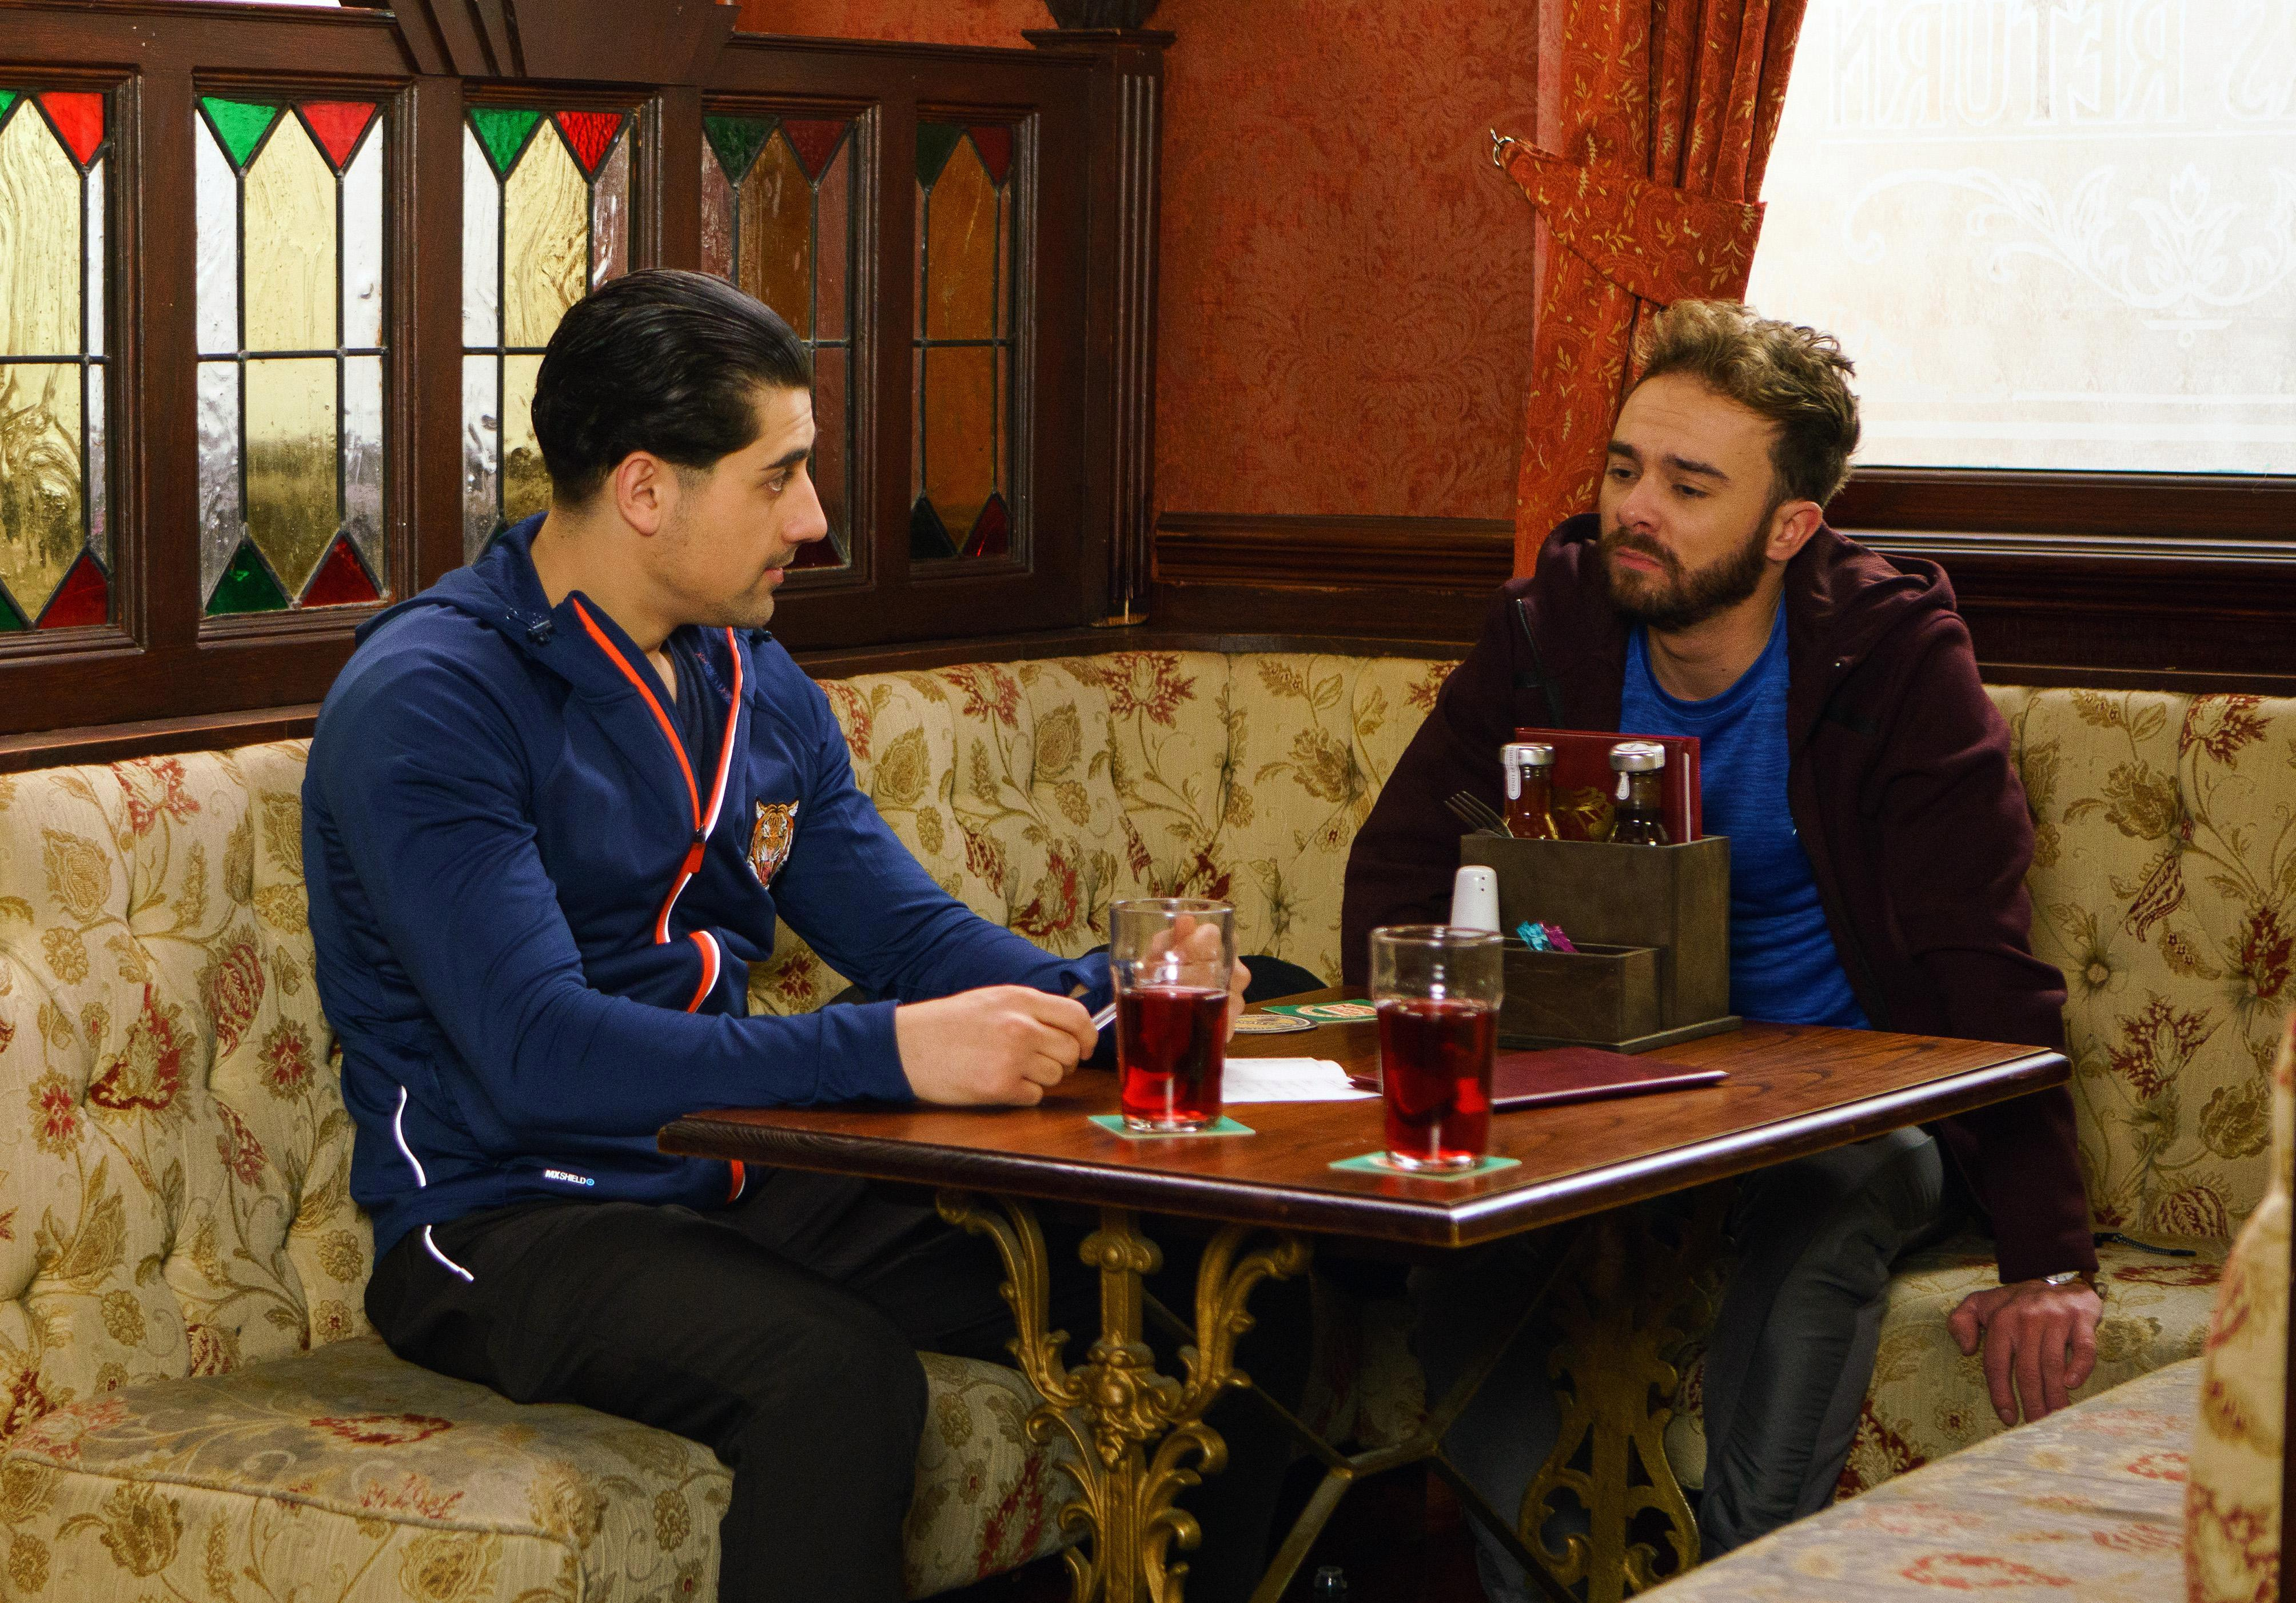 Coronation Street's Josh Tucker will manipulate David Platt after raping him and refuse to leave Weatherfield